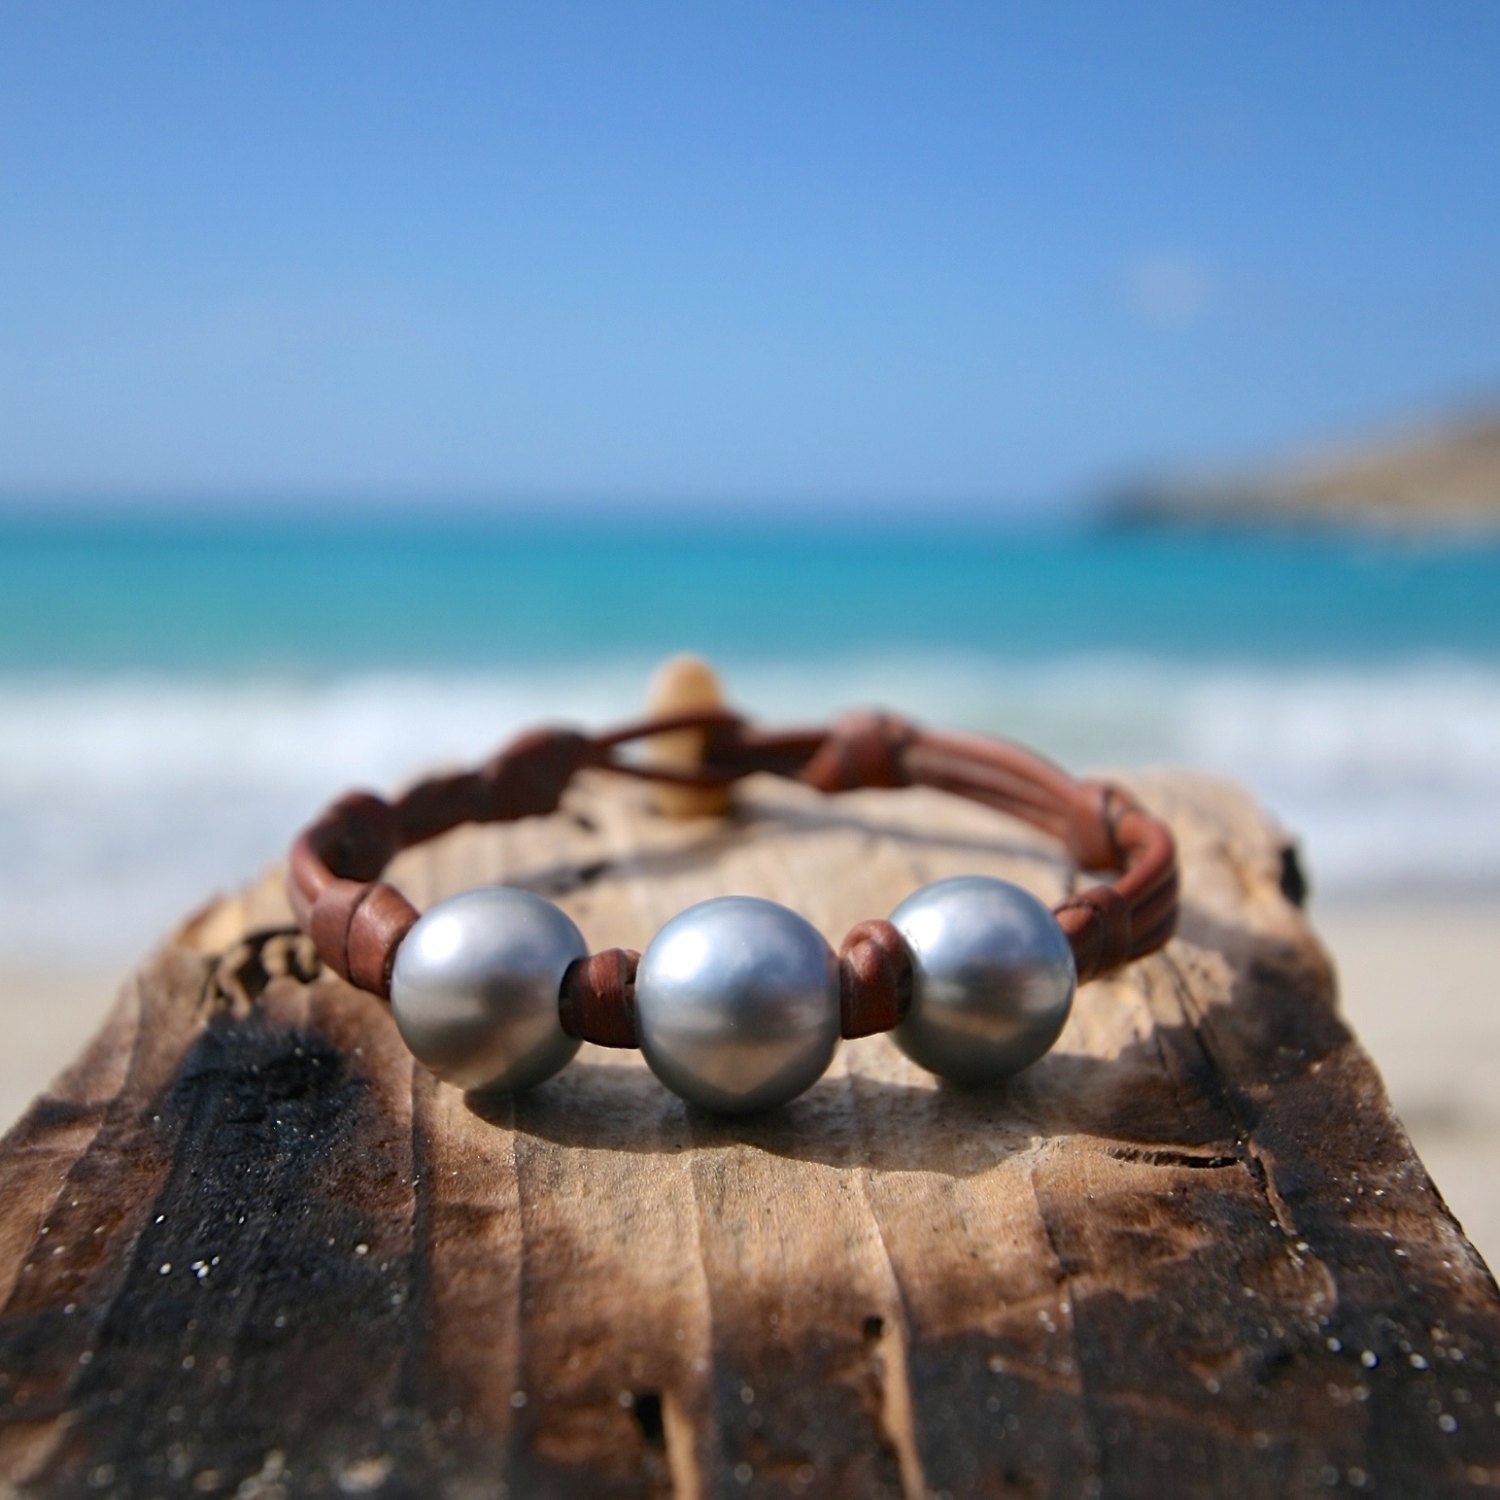 St barth pearls and leather bracelet